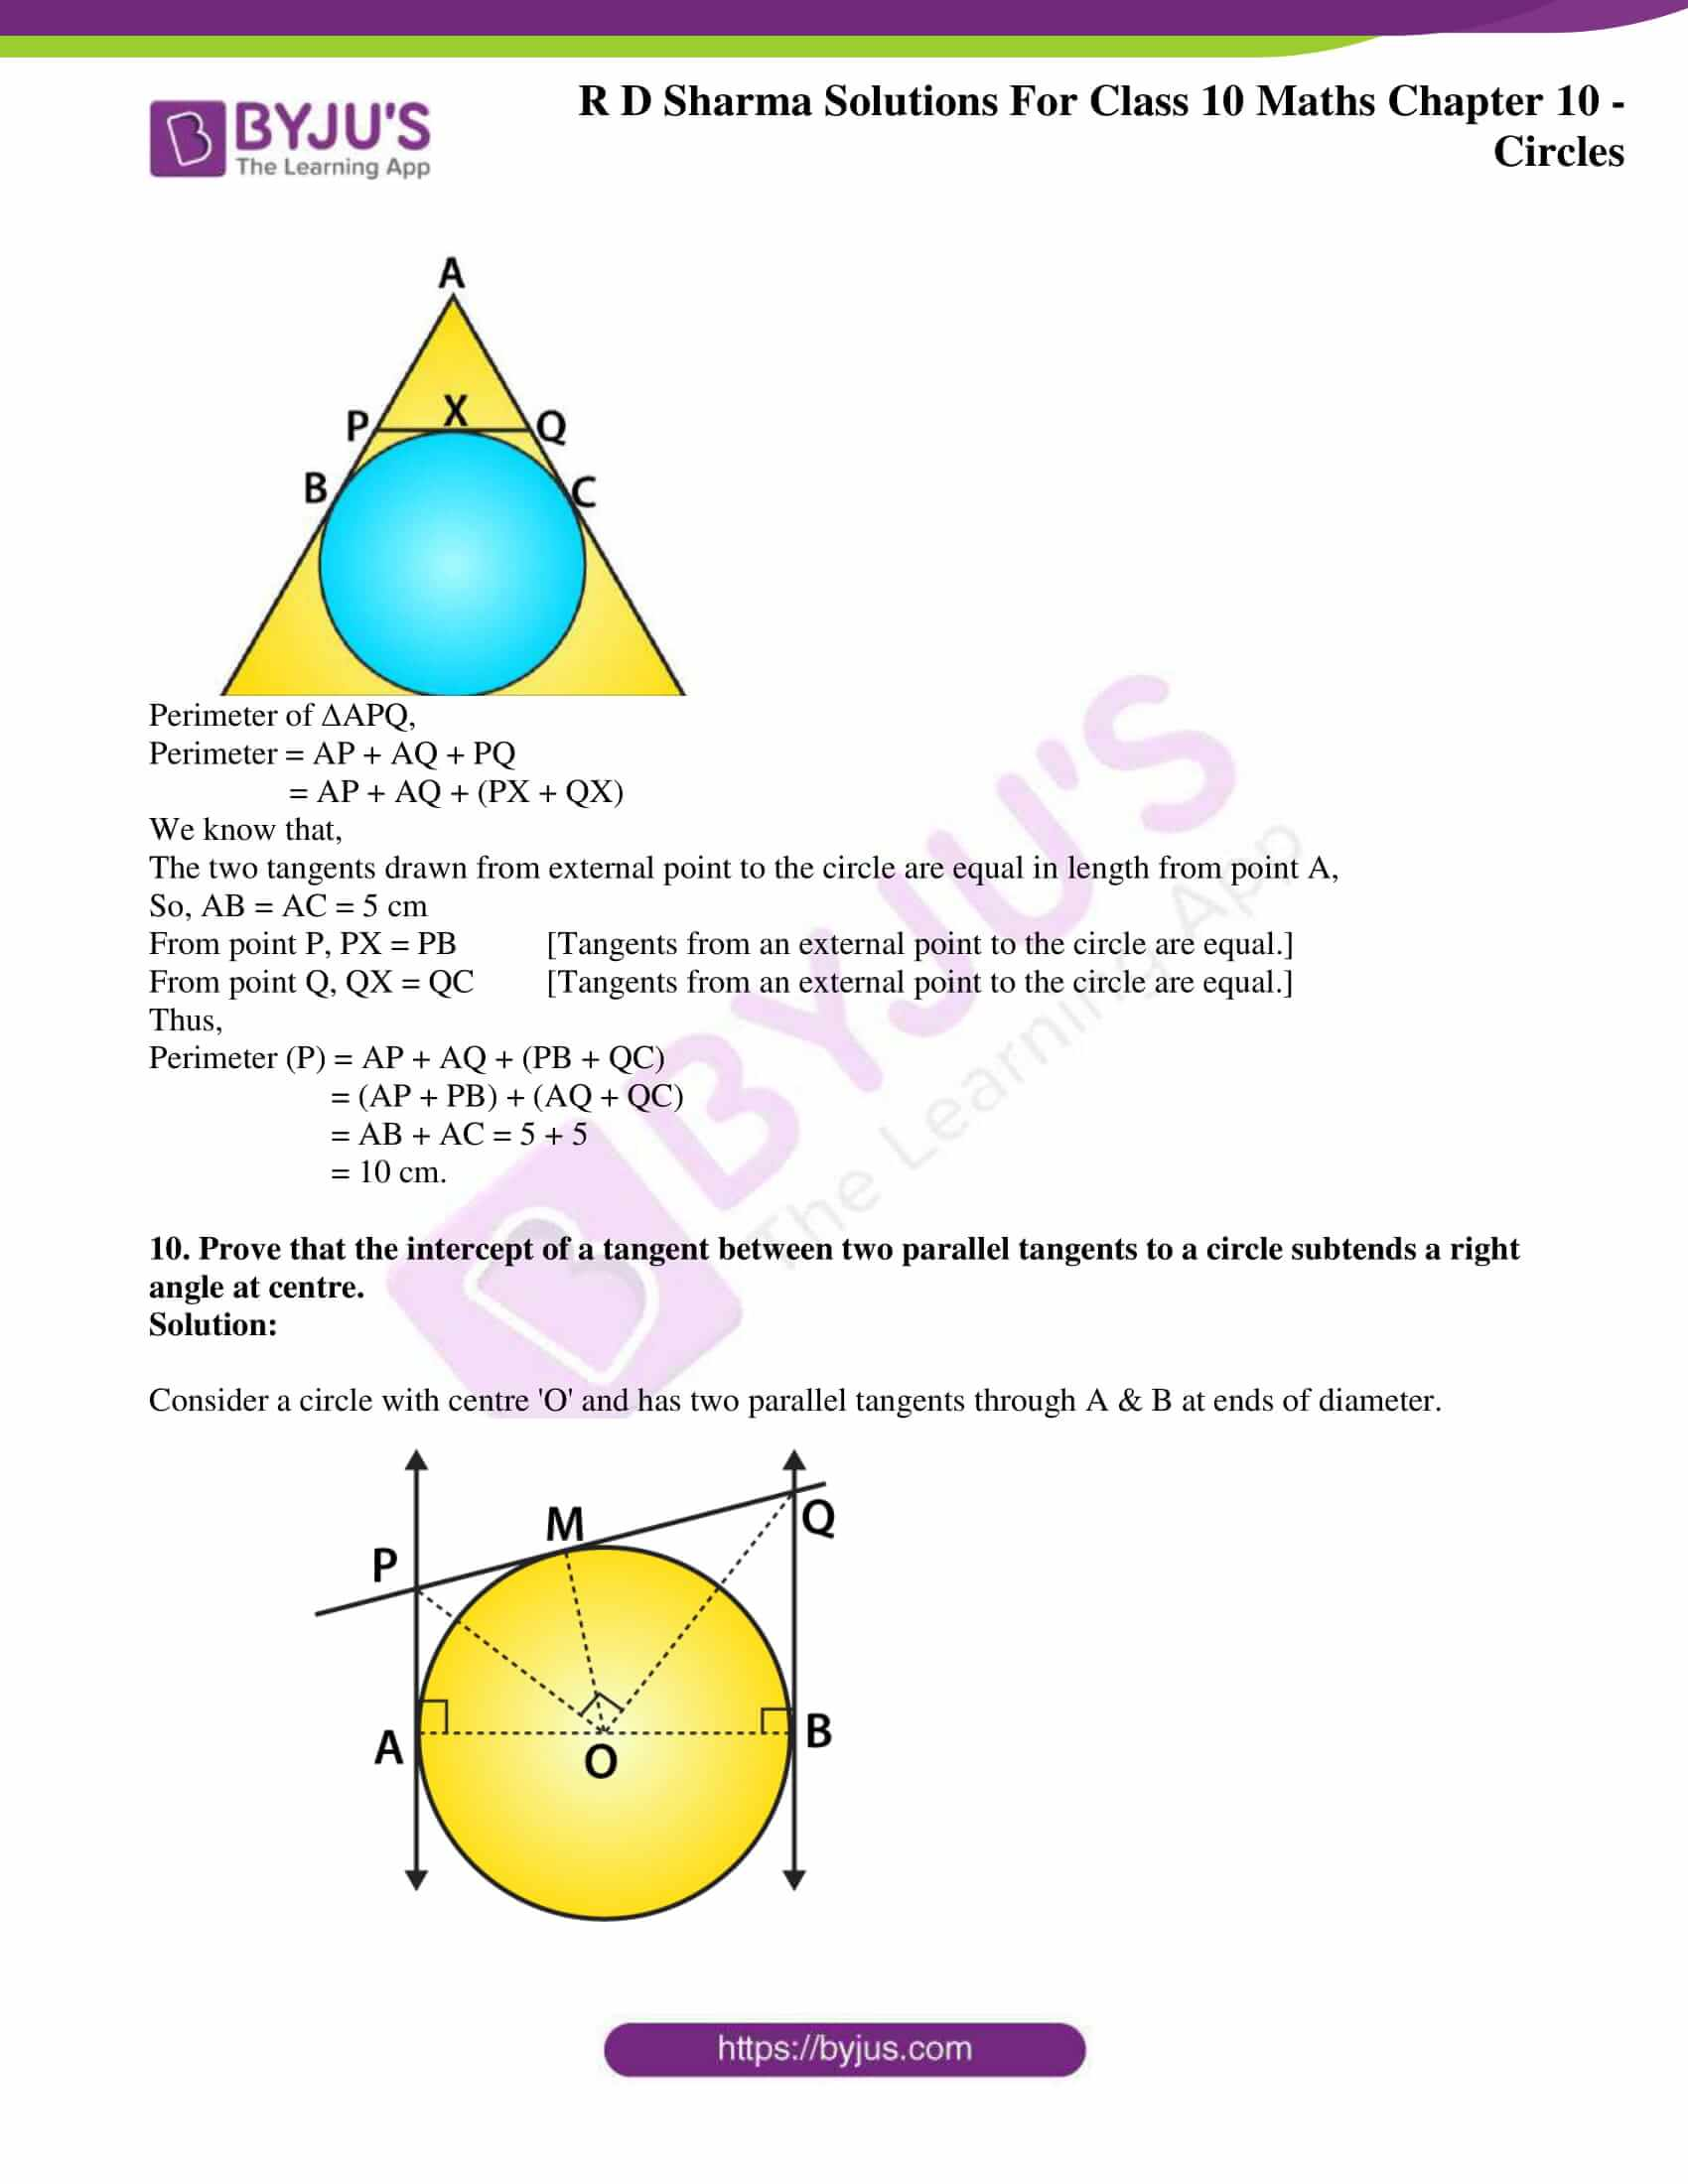 rd sharma class 10 chapter 10 circles solutions exercise 2 06